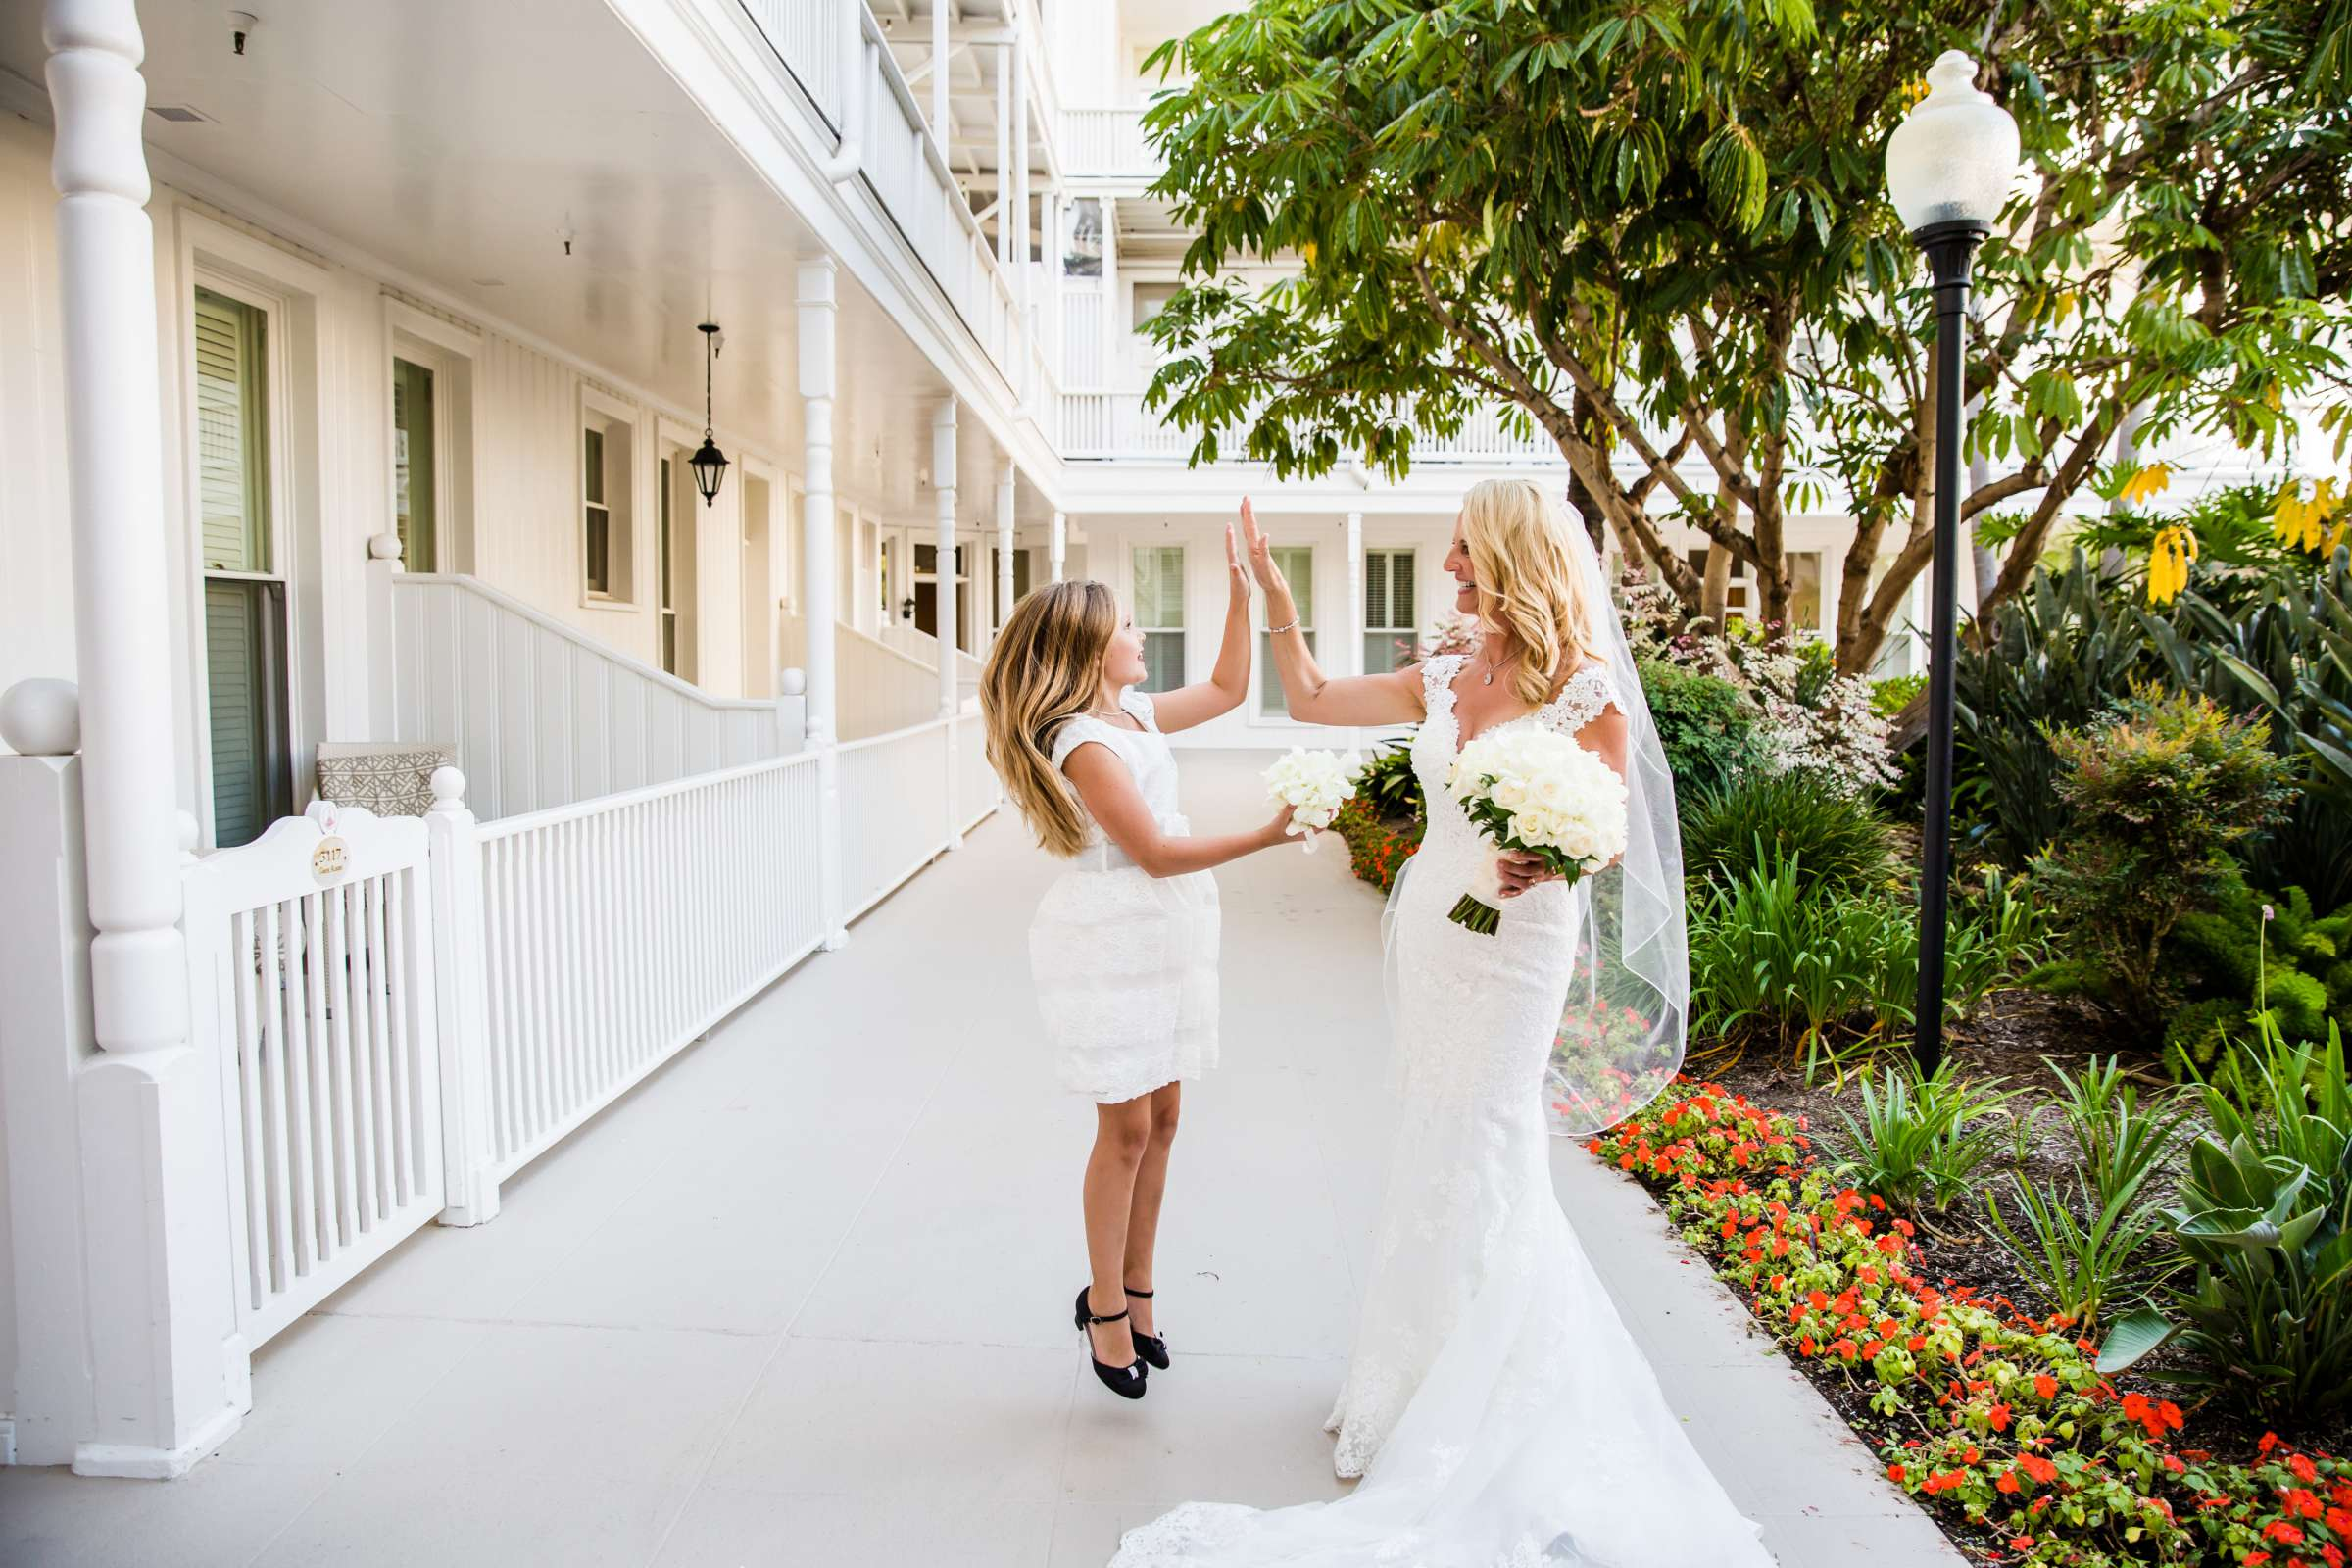 Hotel Del Coronado Wedding coordinated by Creative Affairs Inc, Diane and Paul Wedding Photo #2 by True Photography